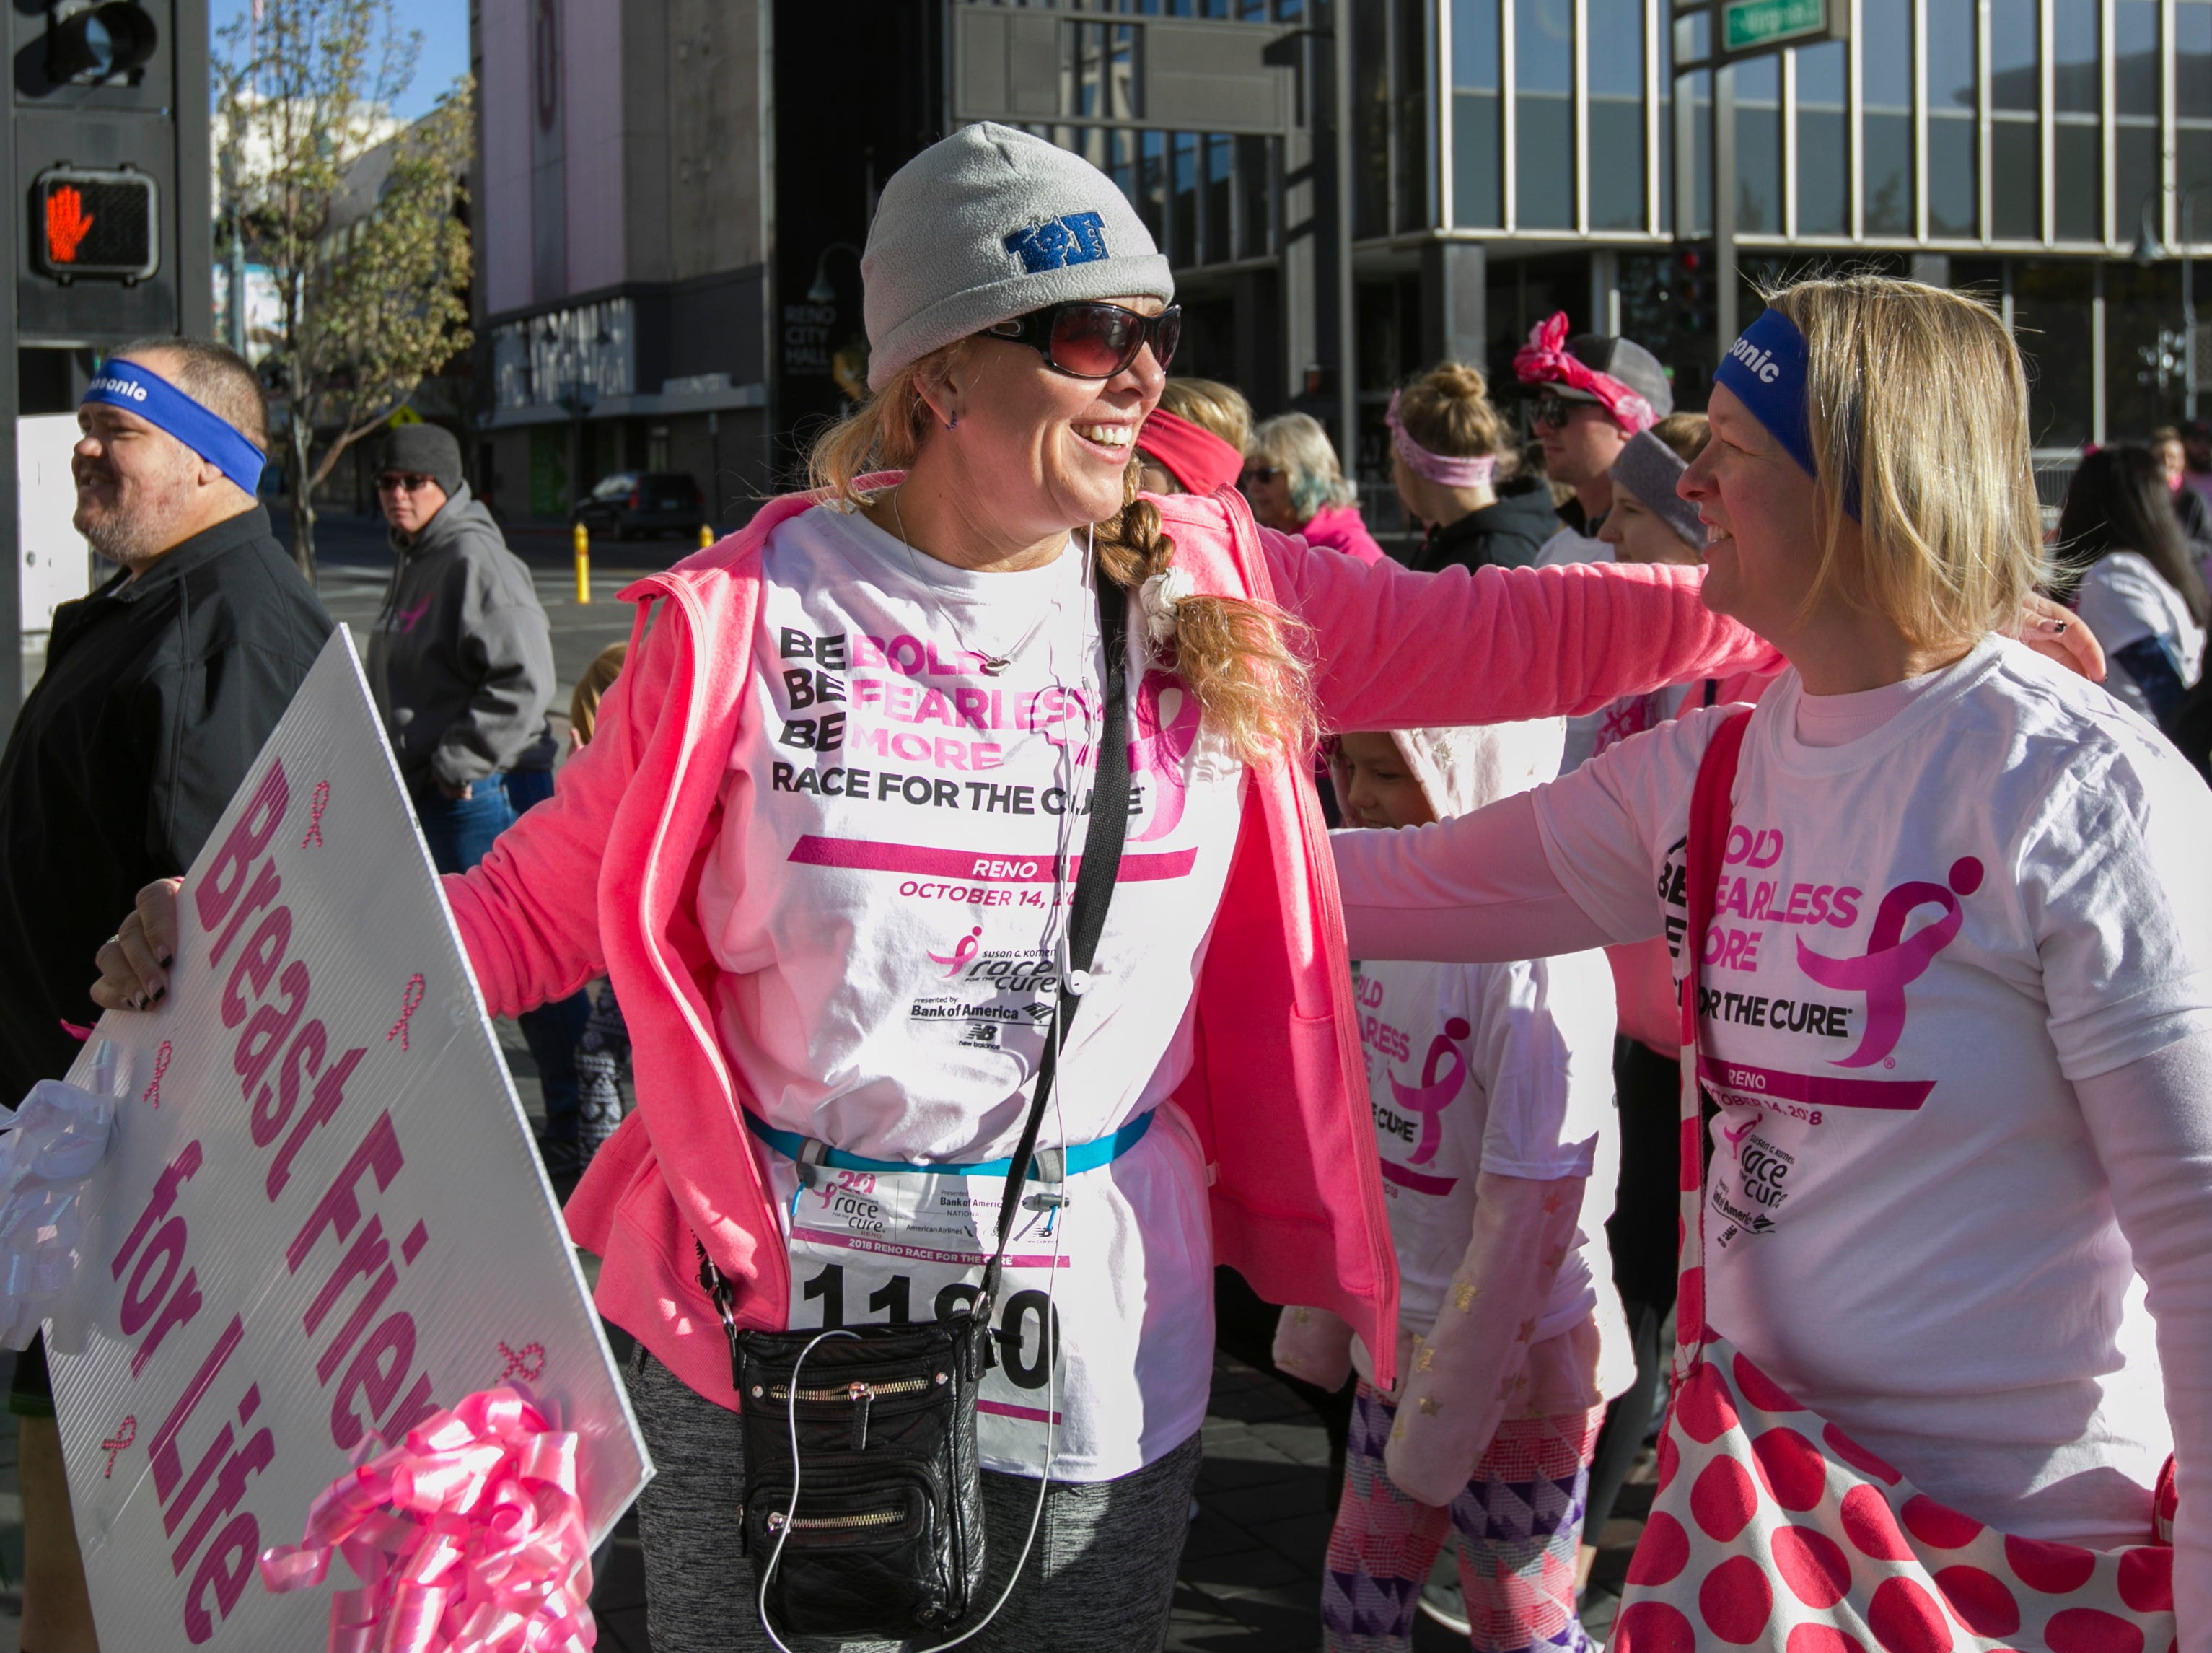 A photograph taken during the Susan G. Komen Race for the Cure on Sunday, October 14,  2018 in downtown Reno.